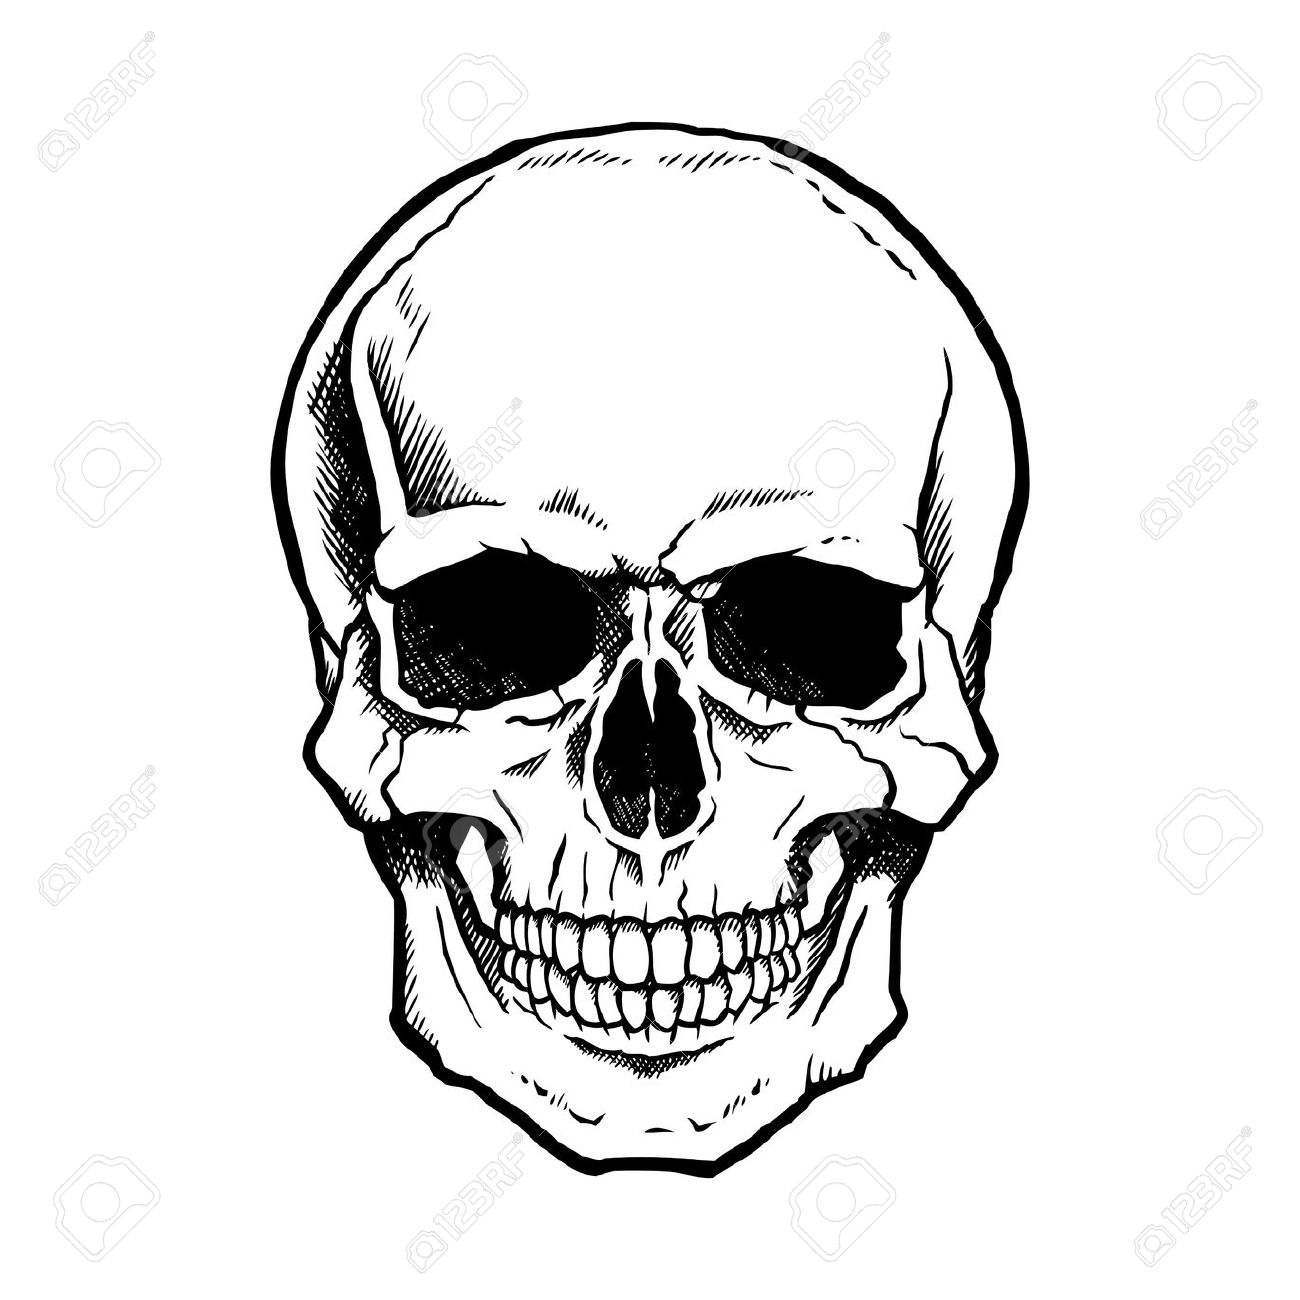 1300x1300 Vector Black And White Illustration Of Human Skull With A Lower